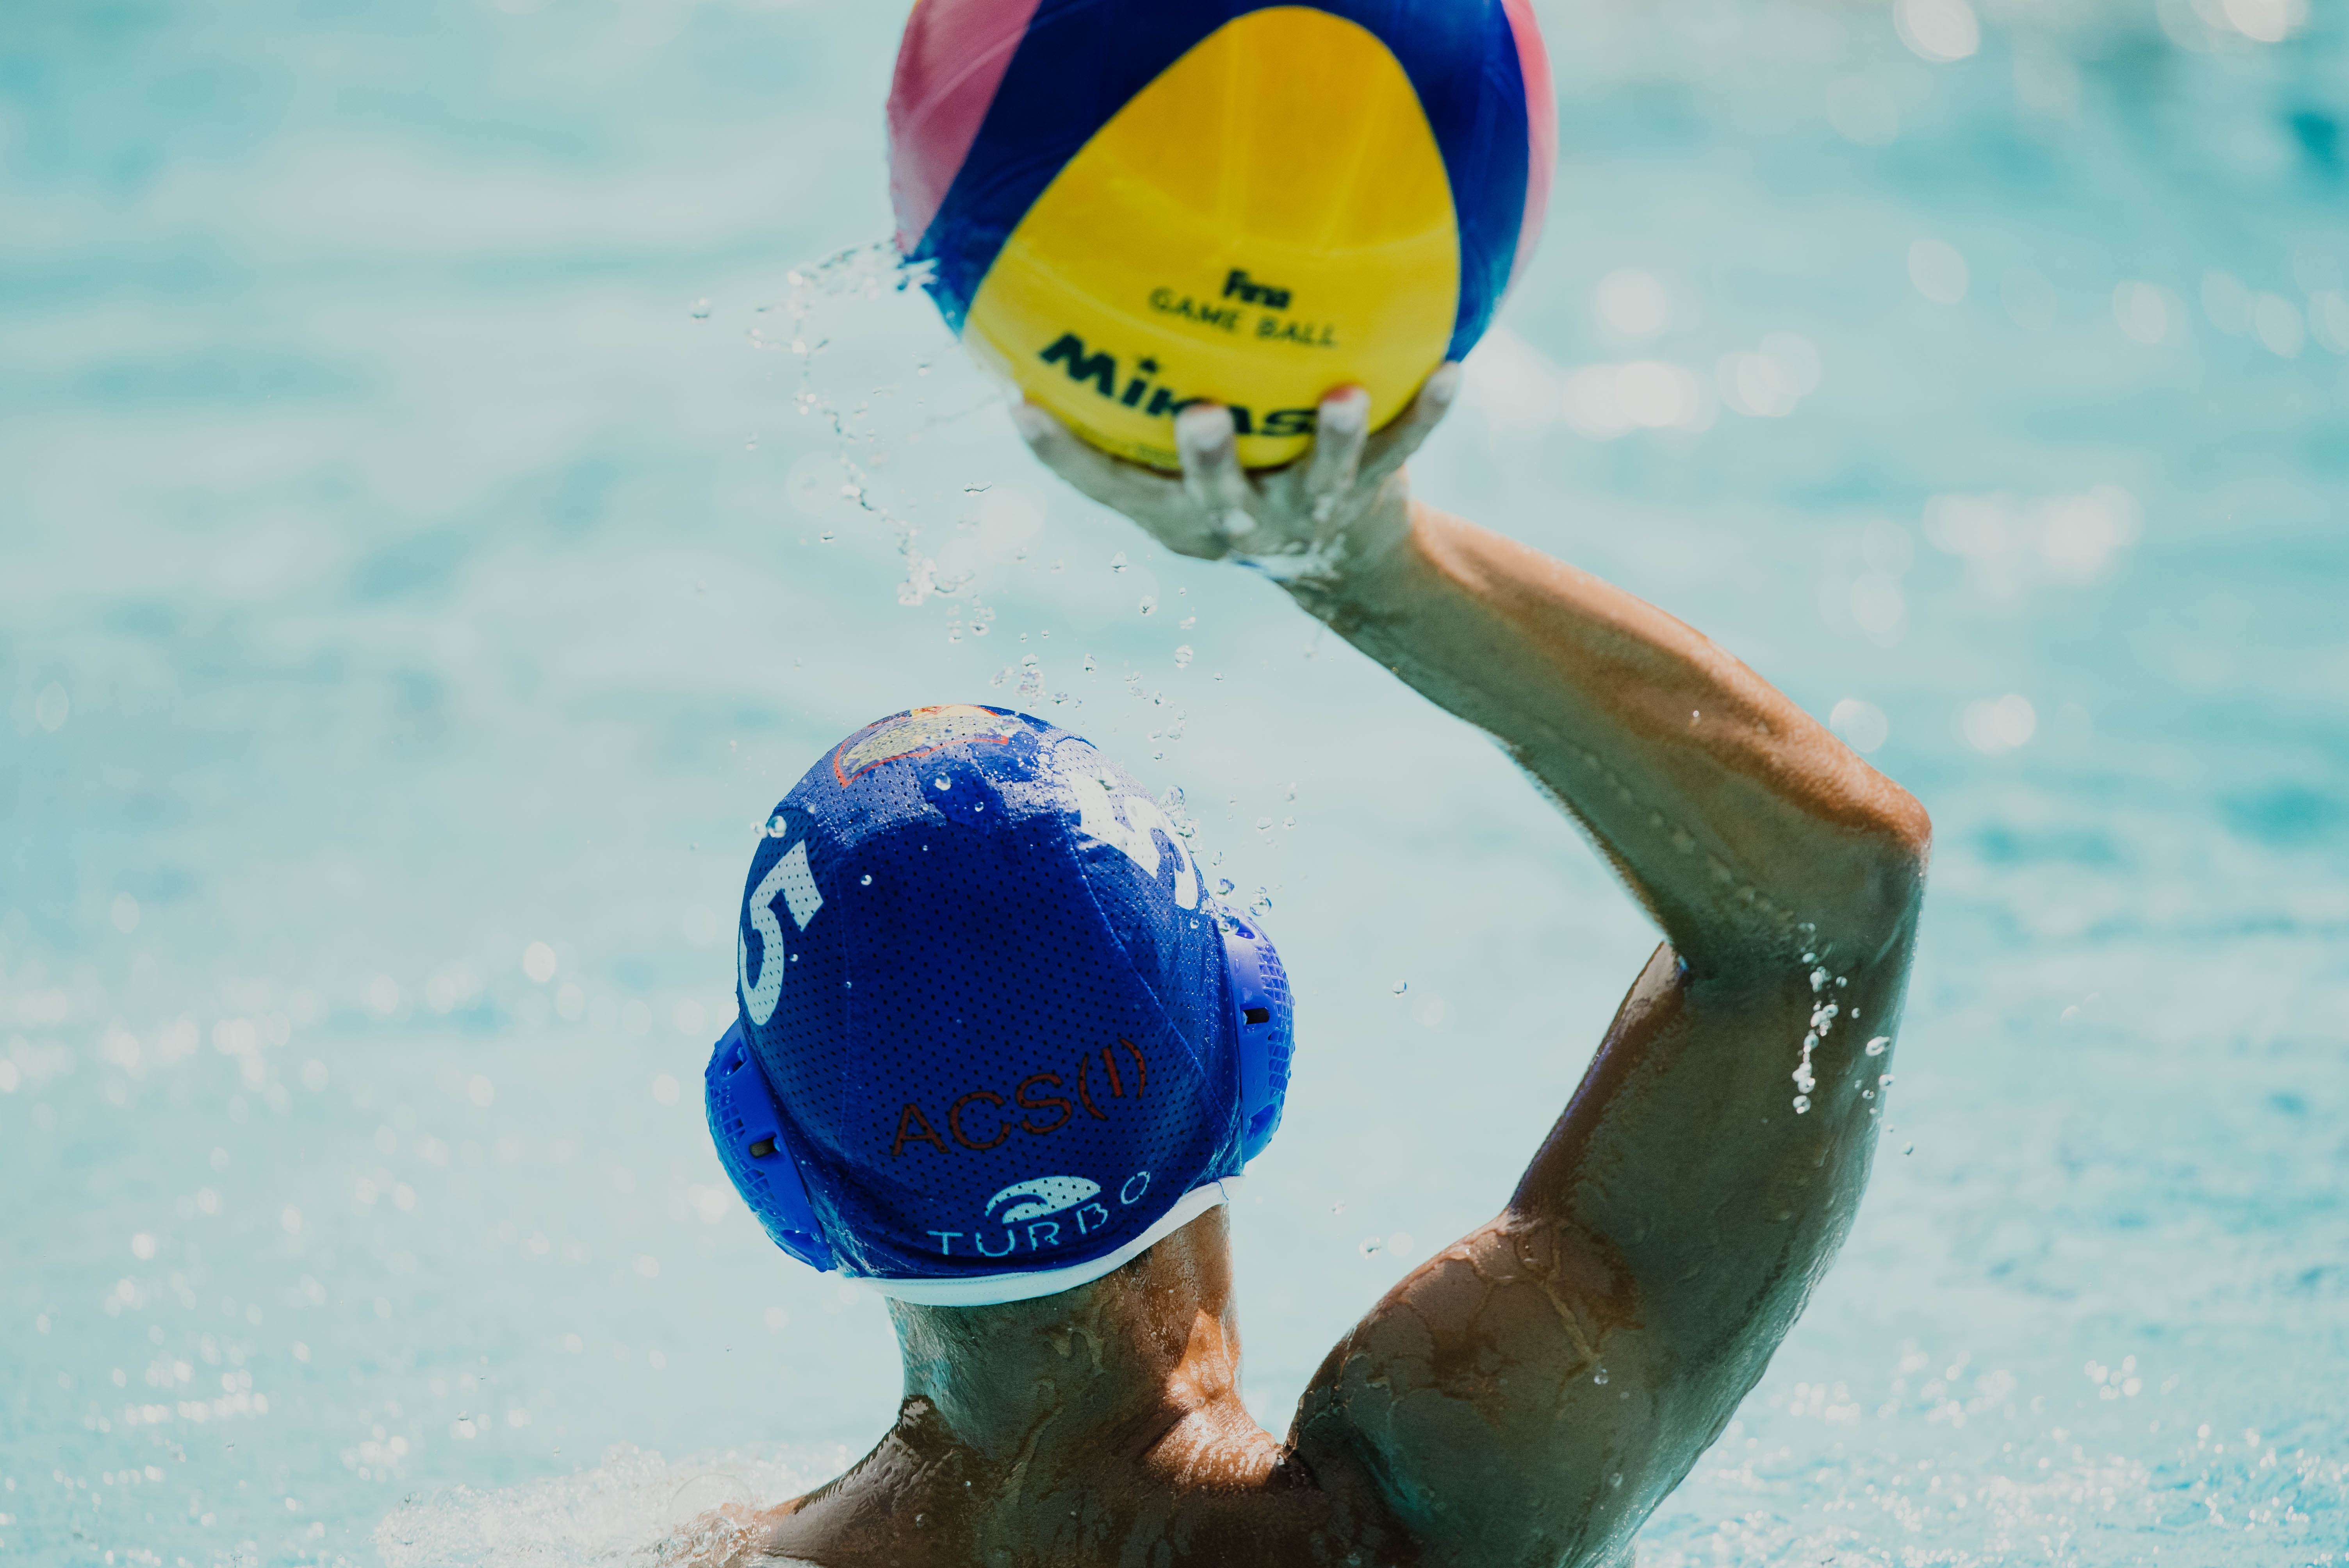 man throwing yellow, blue, and red Mikasa ball